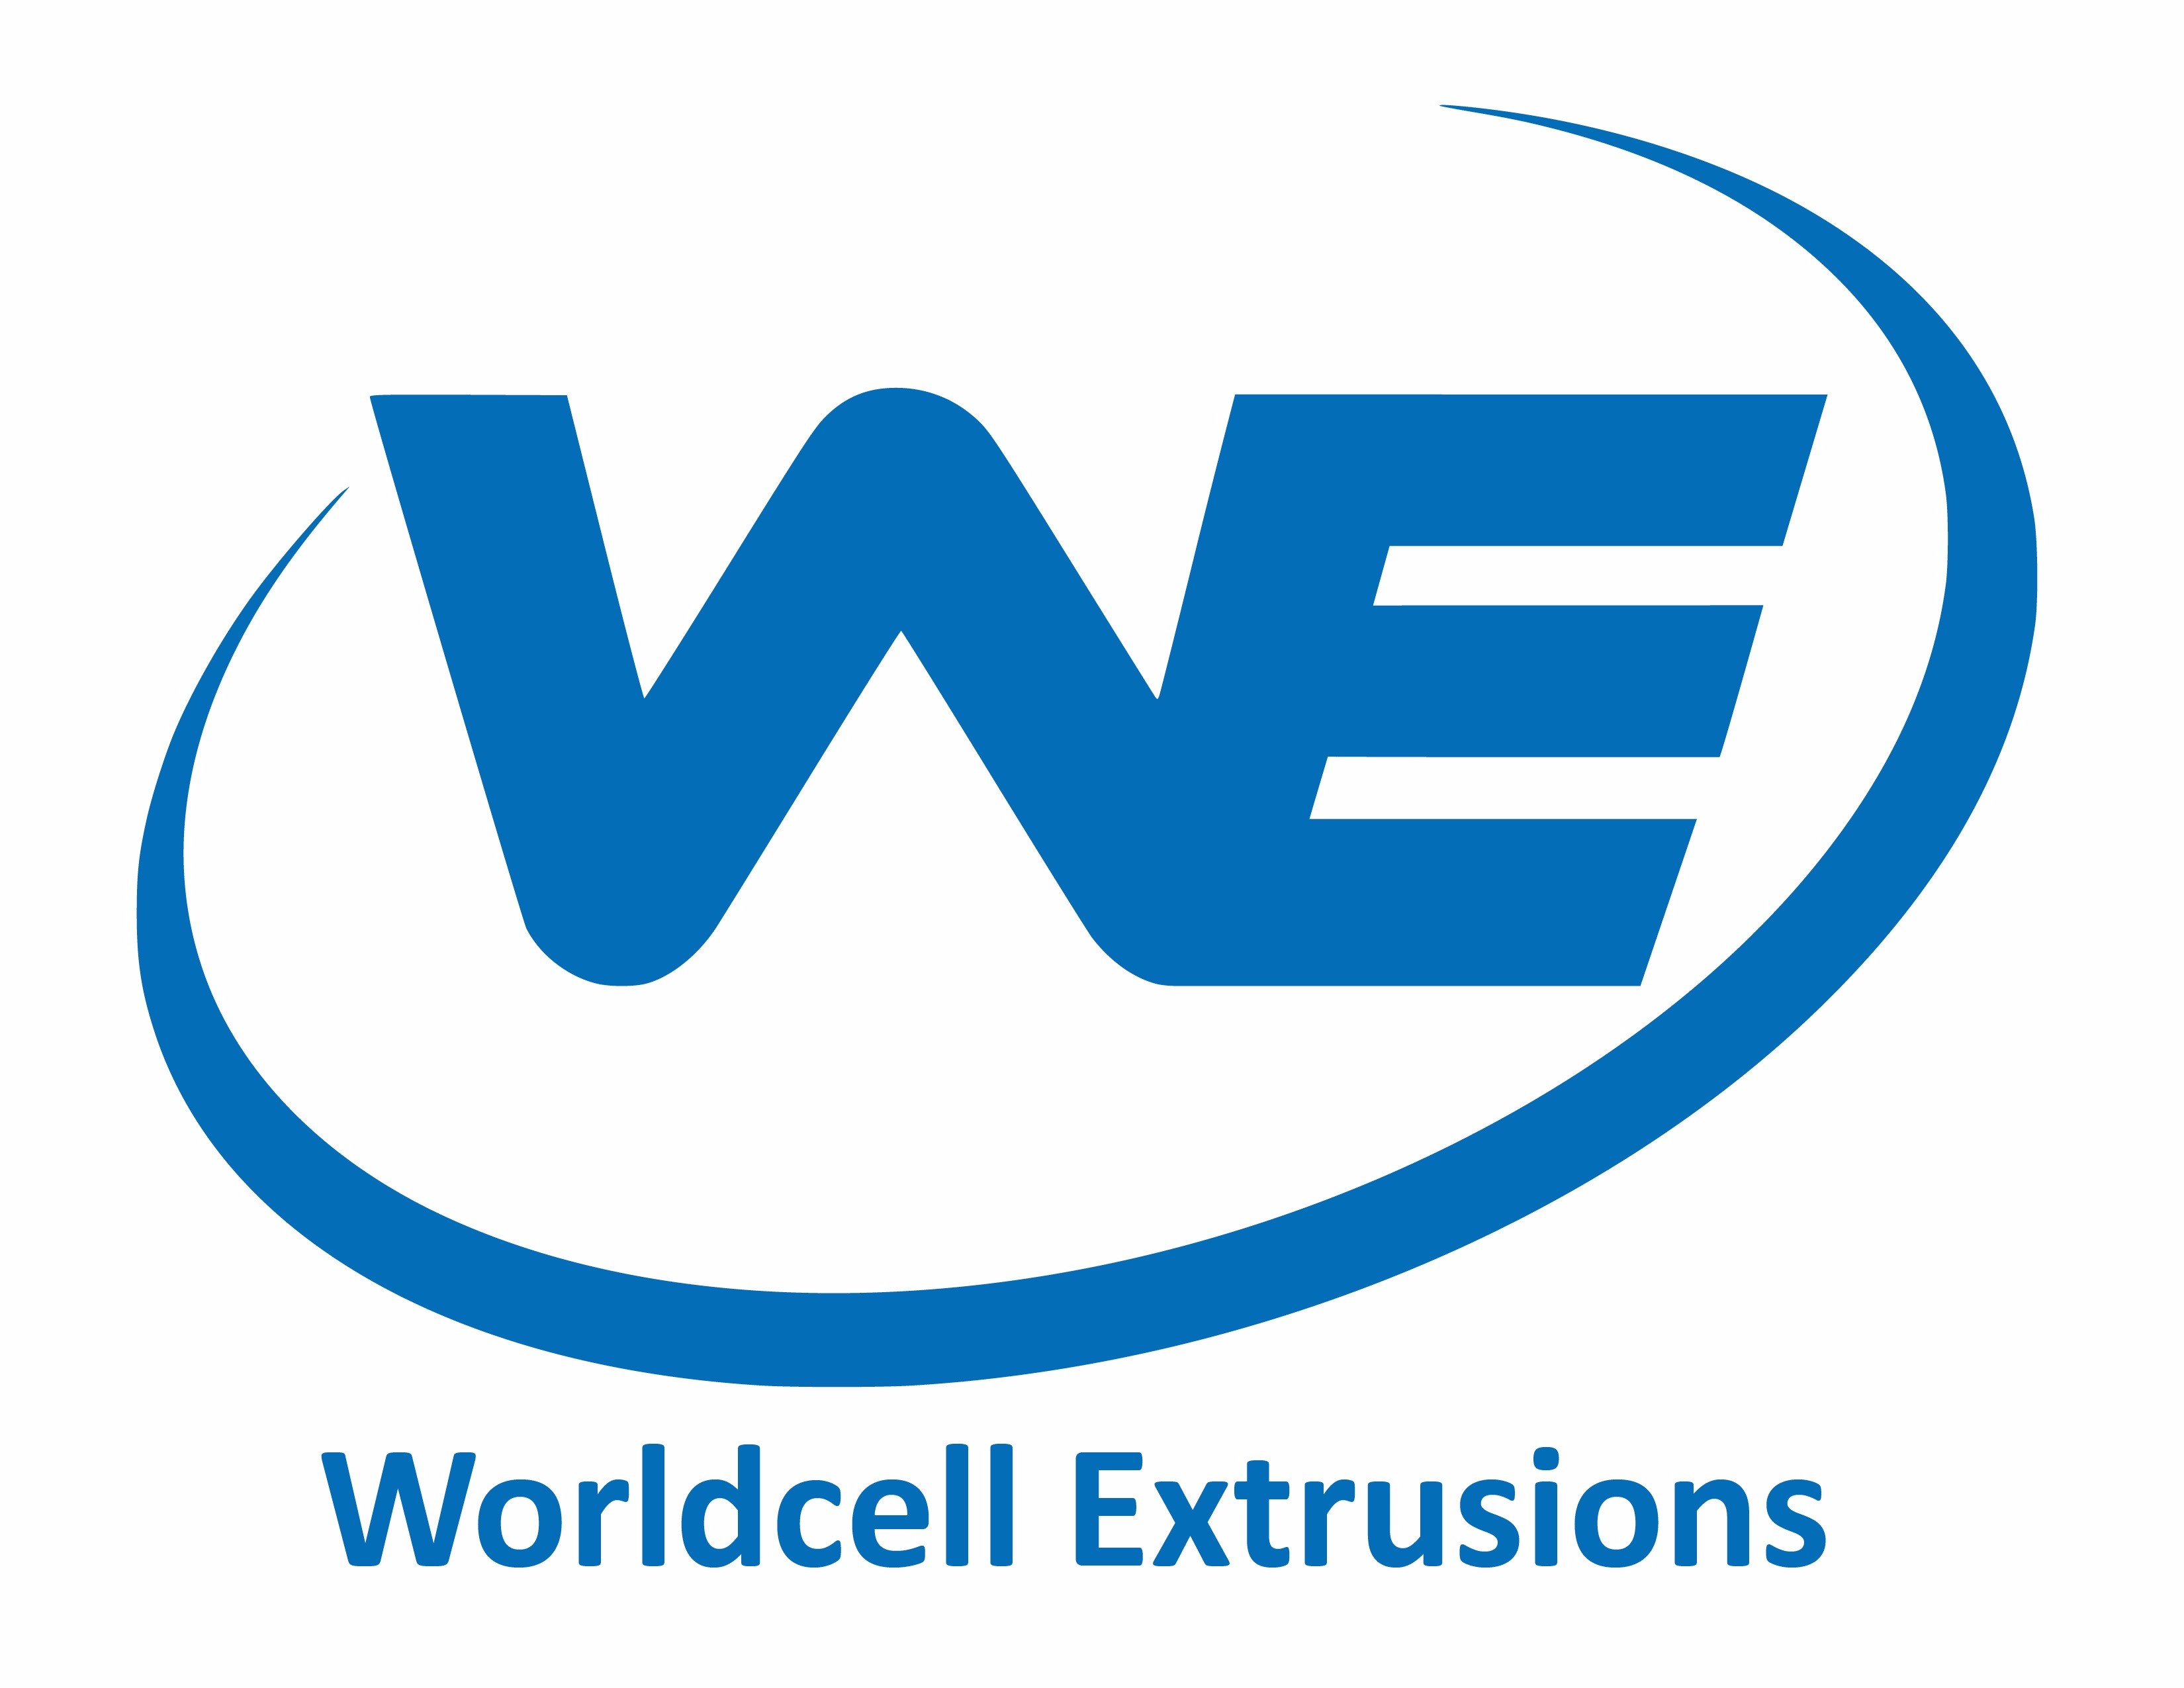 Worldcell Extrusions